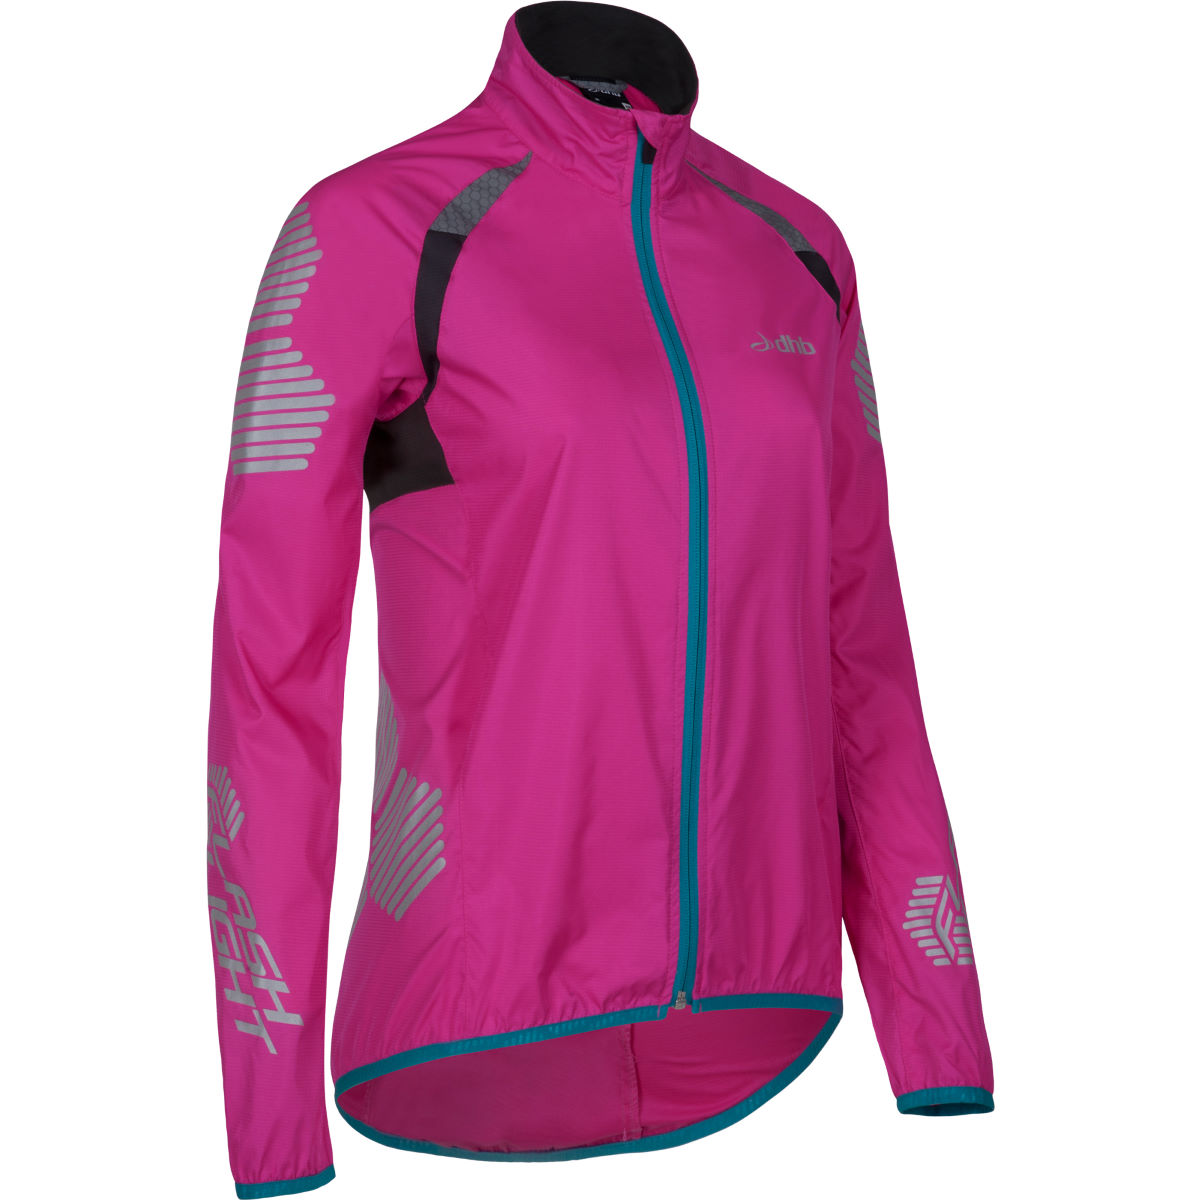 Veste cycliste coupe-vent Femme dhb Flashlight XT - 10 UK Rose Coupe-vents vélo